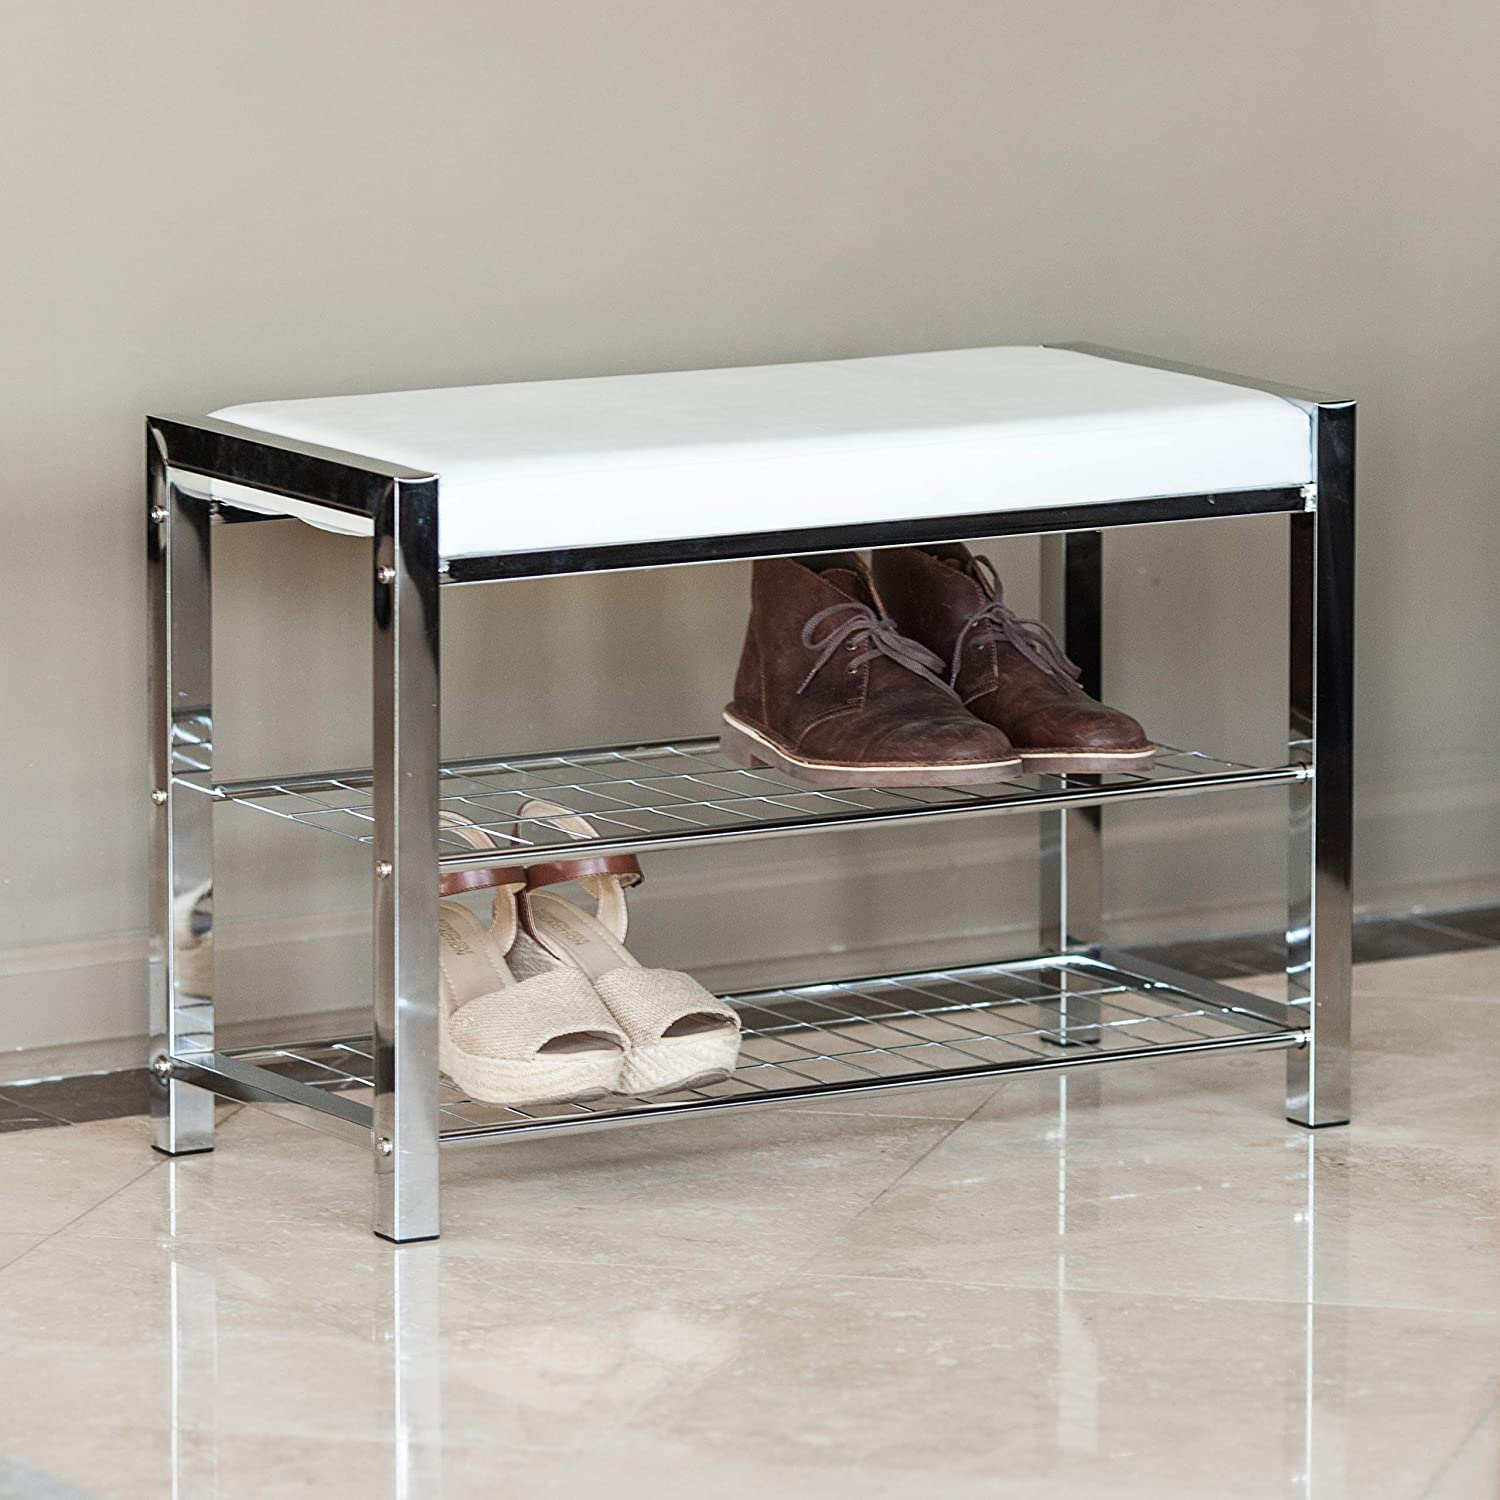 HA16832 White Leatherette Entryway Shoe Storage//Organizer Rack and Bench with Chrome Frame Danya B